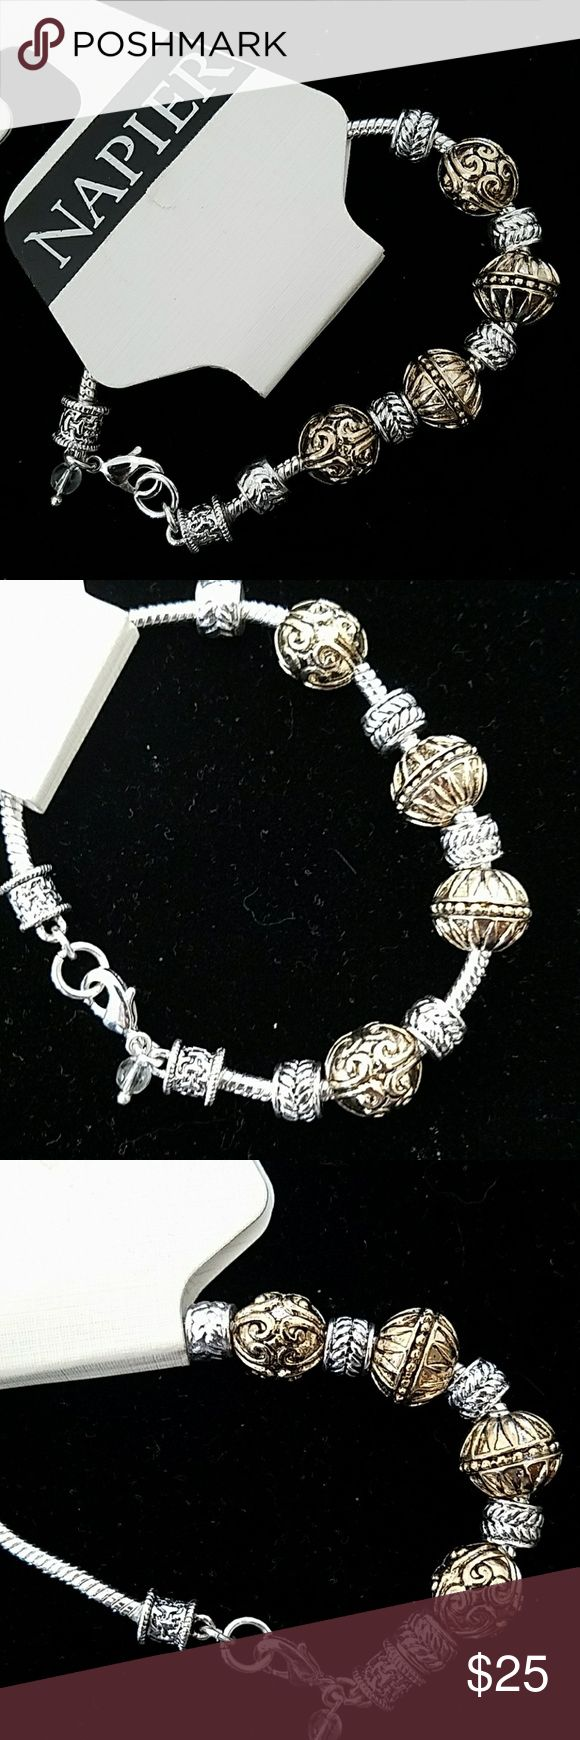 Napier Bracelet Beautiful brand new with tag Napier Bracelet. Gold and silver tone. Napier Jewelry Bracelets